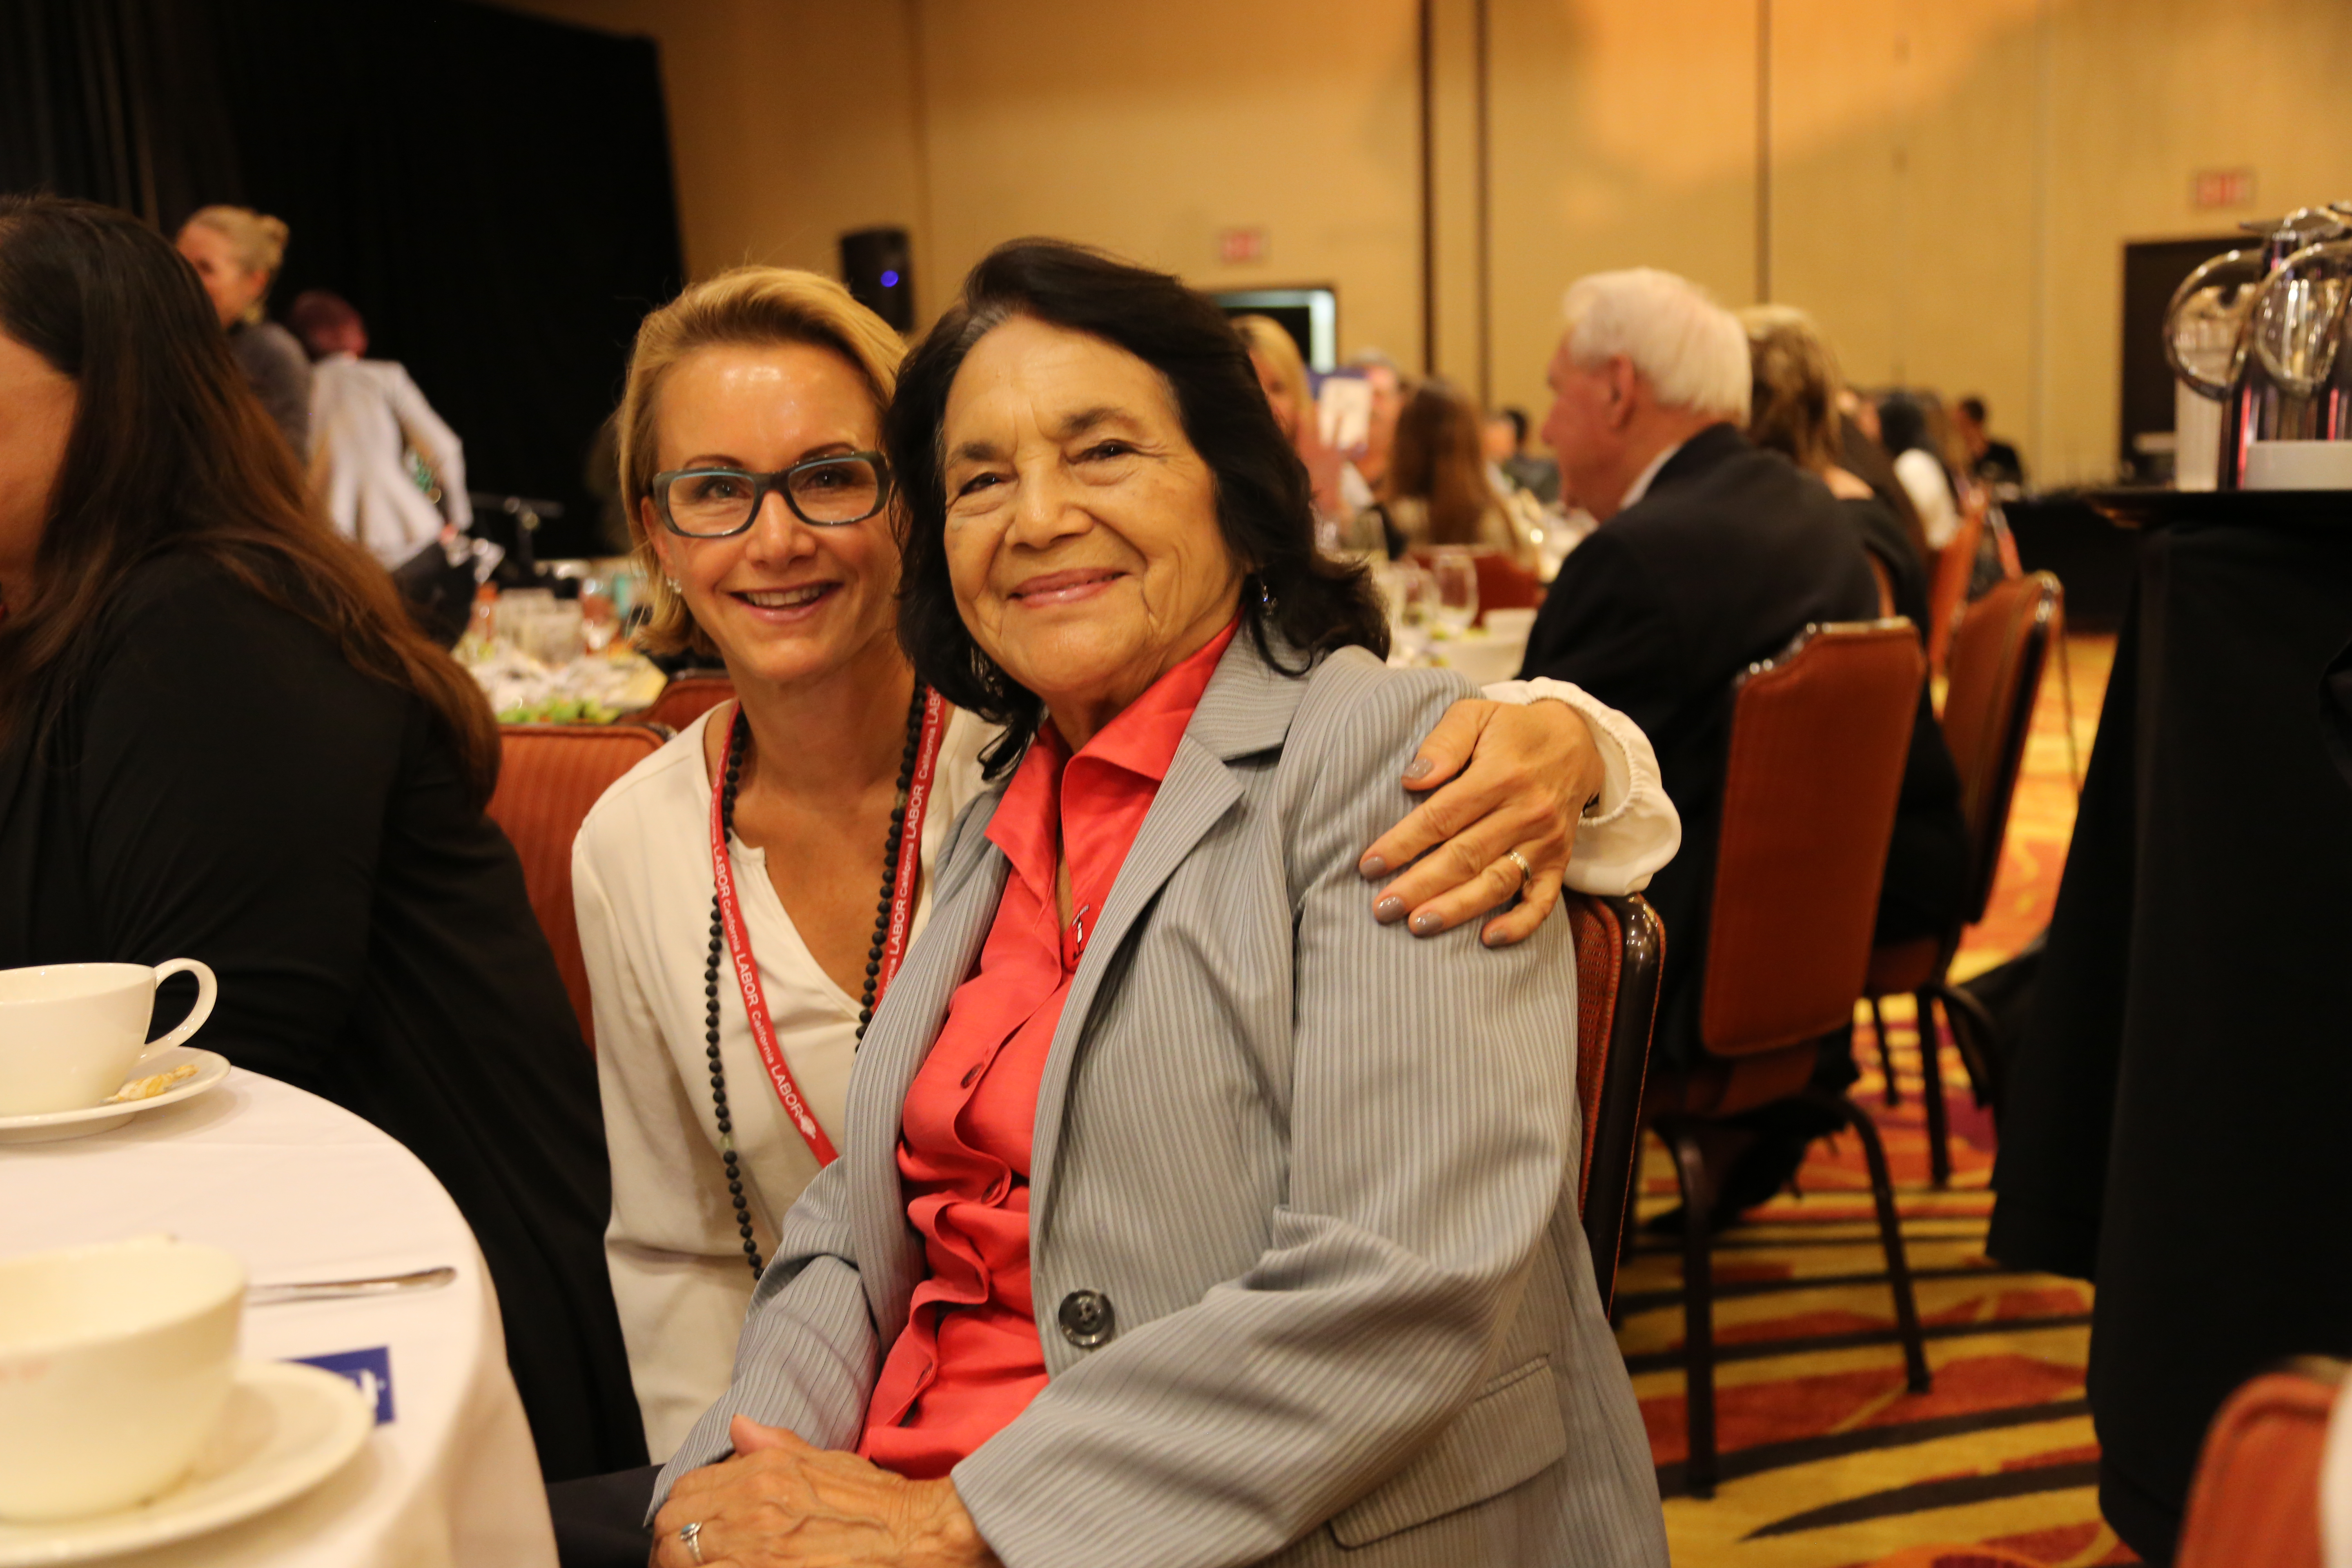 President Gabrielle Carteris with Dolores Huerta, co-founder of the United Farm Workers.